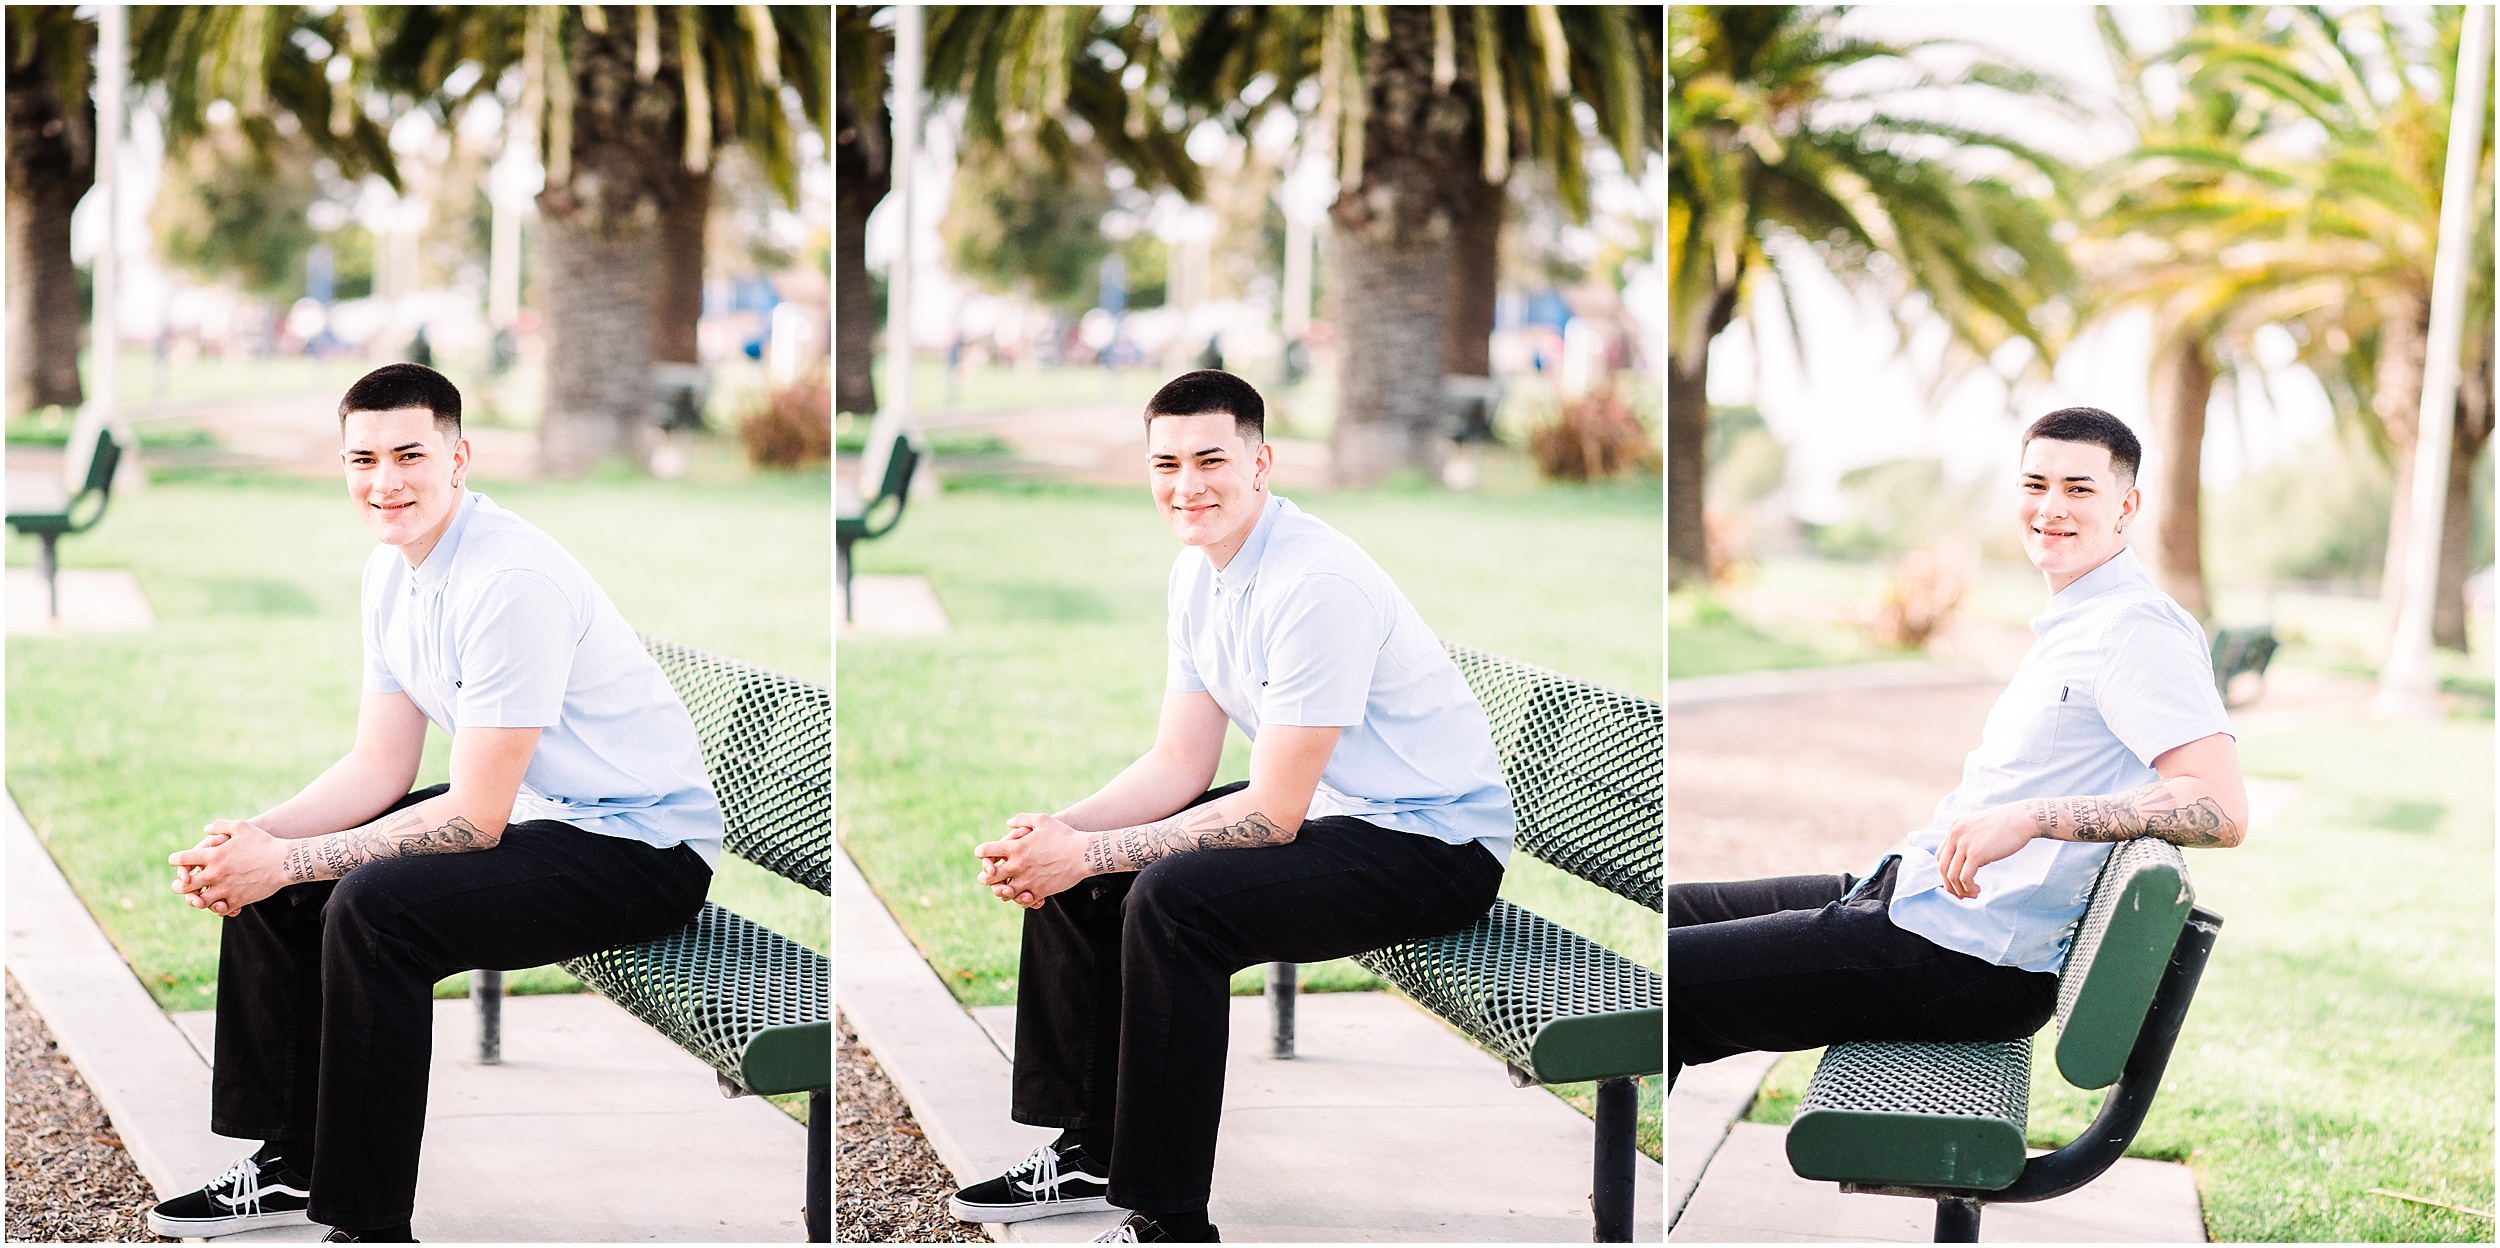 Ventura-California-Senior-Photographer-and-Tallahassee-Florida-Senior-Photographer-Johnny—Senior-Session-in-Oxnard-California_0001.jpg